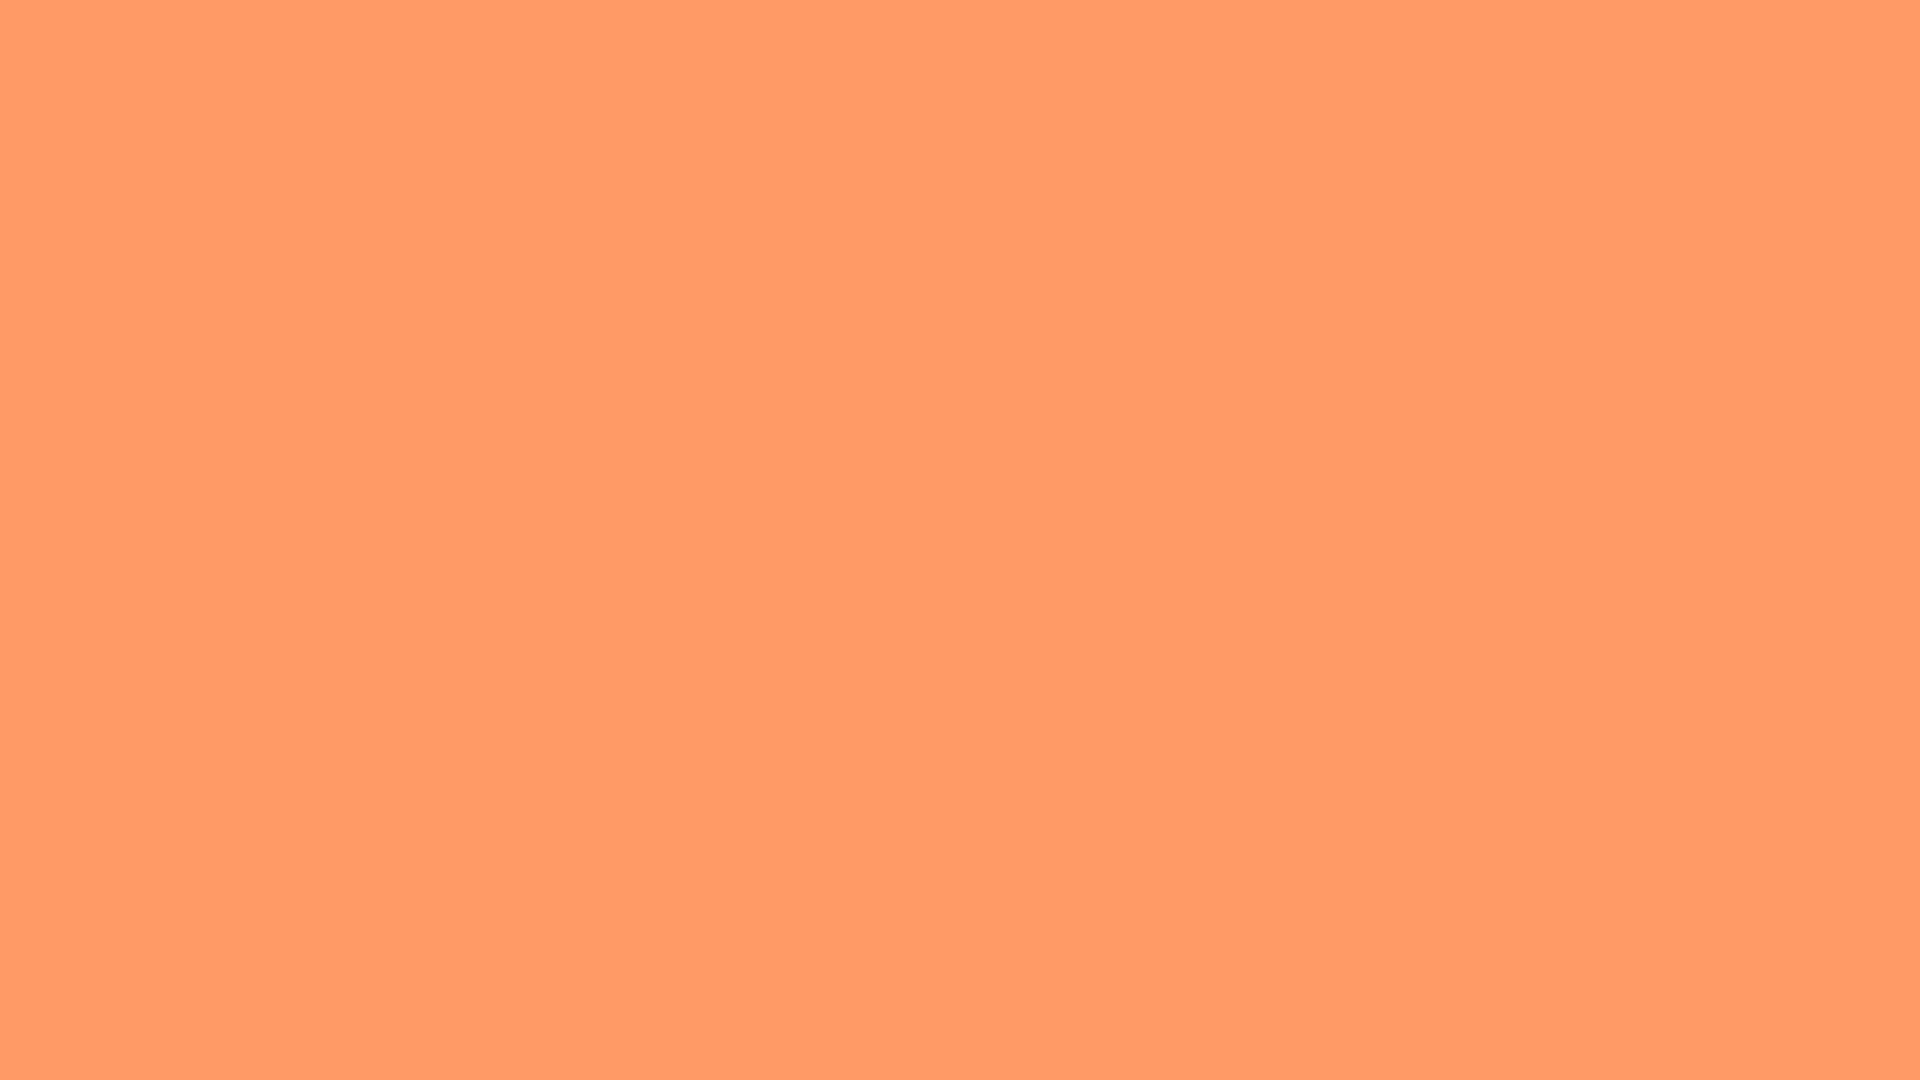 1920x1080 Atomic Tangerine Solid Color Background